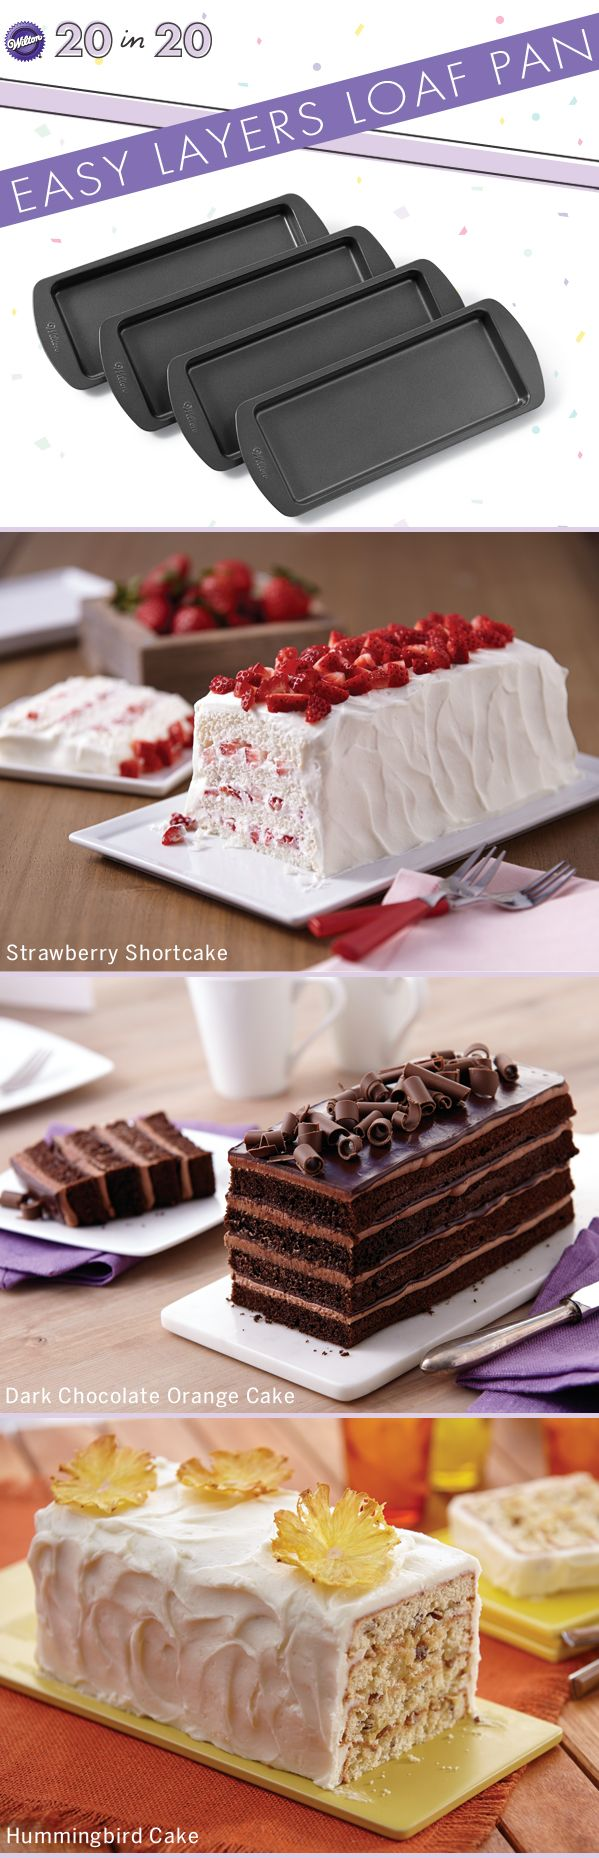 Check out these new layered cake recipes stacked using our Easy Layers! 4 Piece Loaf Cake Pan Set coming in June!